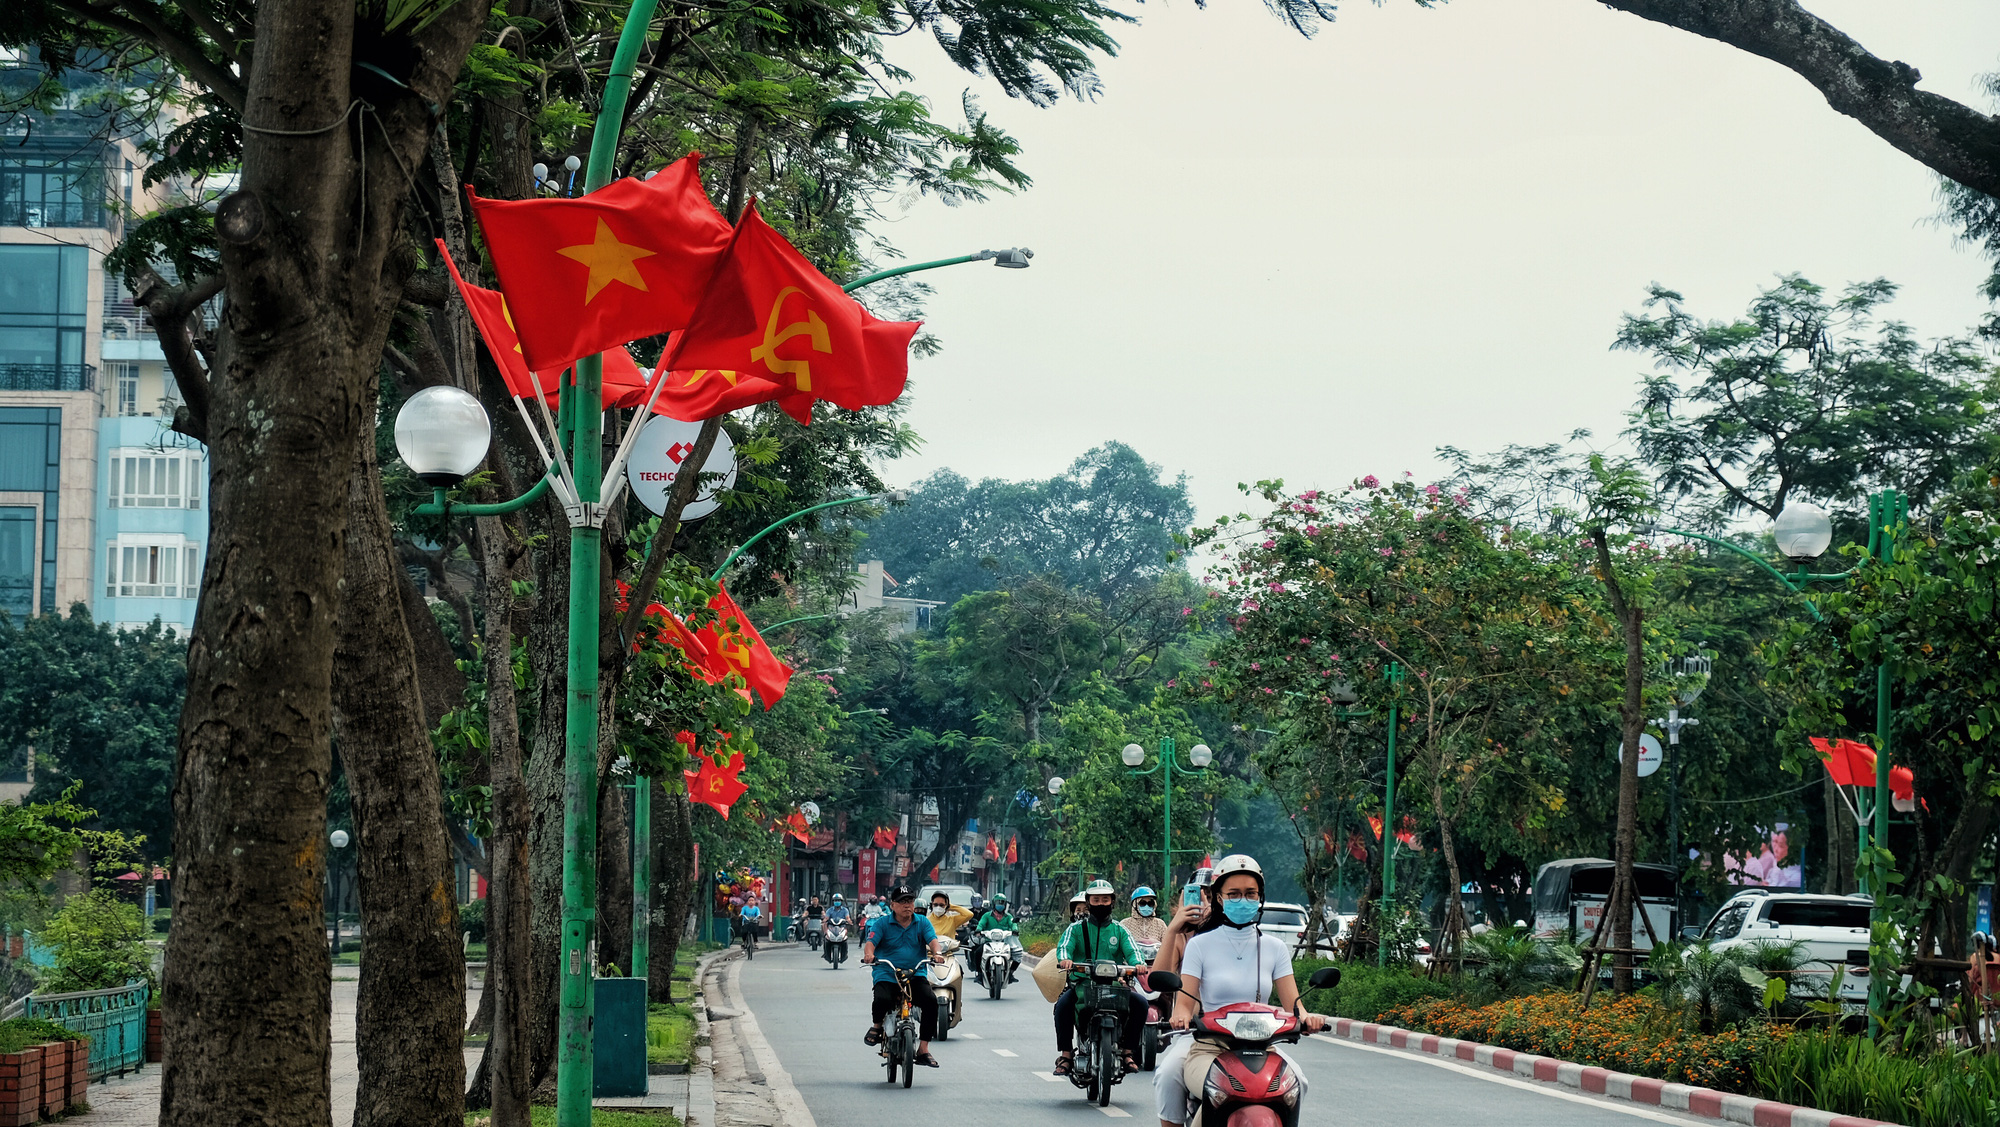 Thanh Nien Street in Ba Dinh District, Hanoi is decorated with national flags on April 30, 2020. Photo: Mai Thuong / Tuoi Tre